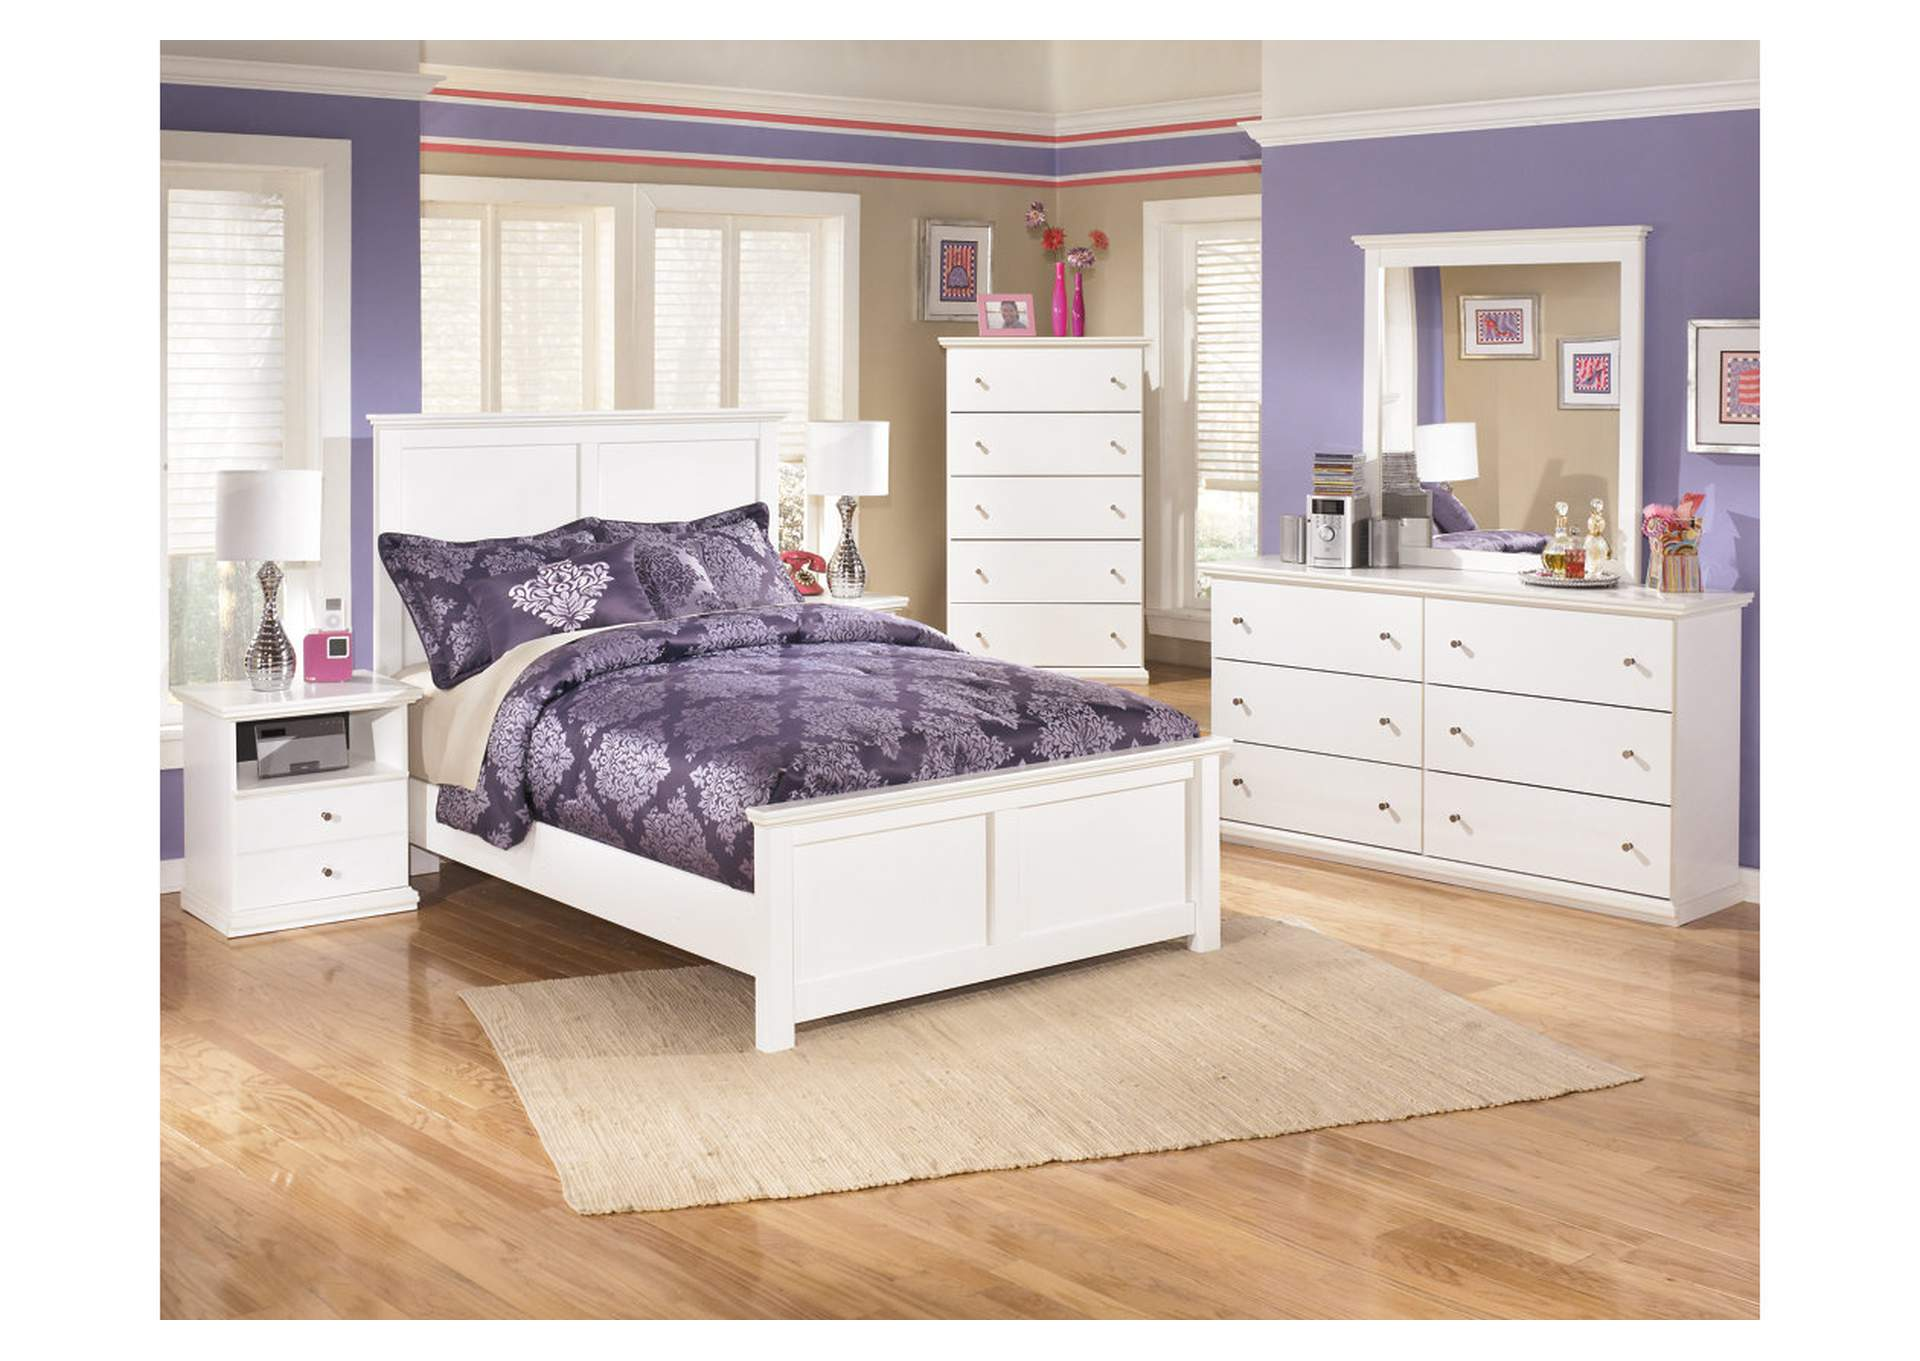 Bostwick Shoals Full Panel Bed w/Dresser, Mirror, Drawer Chest & 2 Nightstands,Signature Design By Ashley